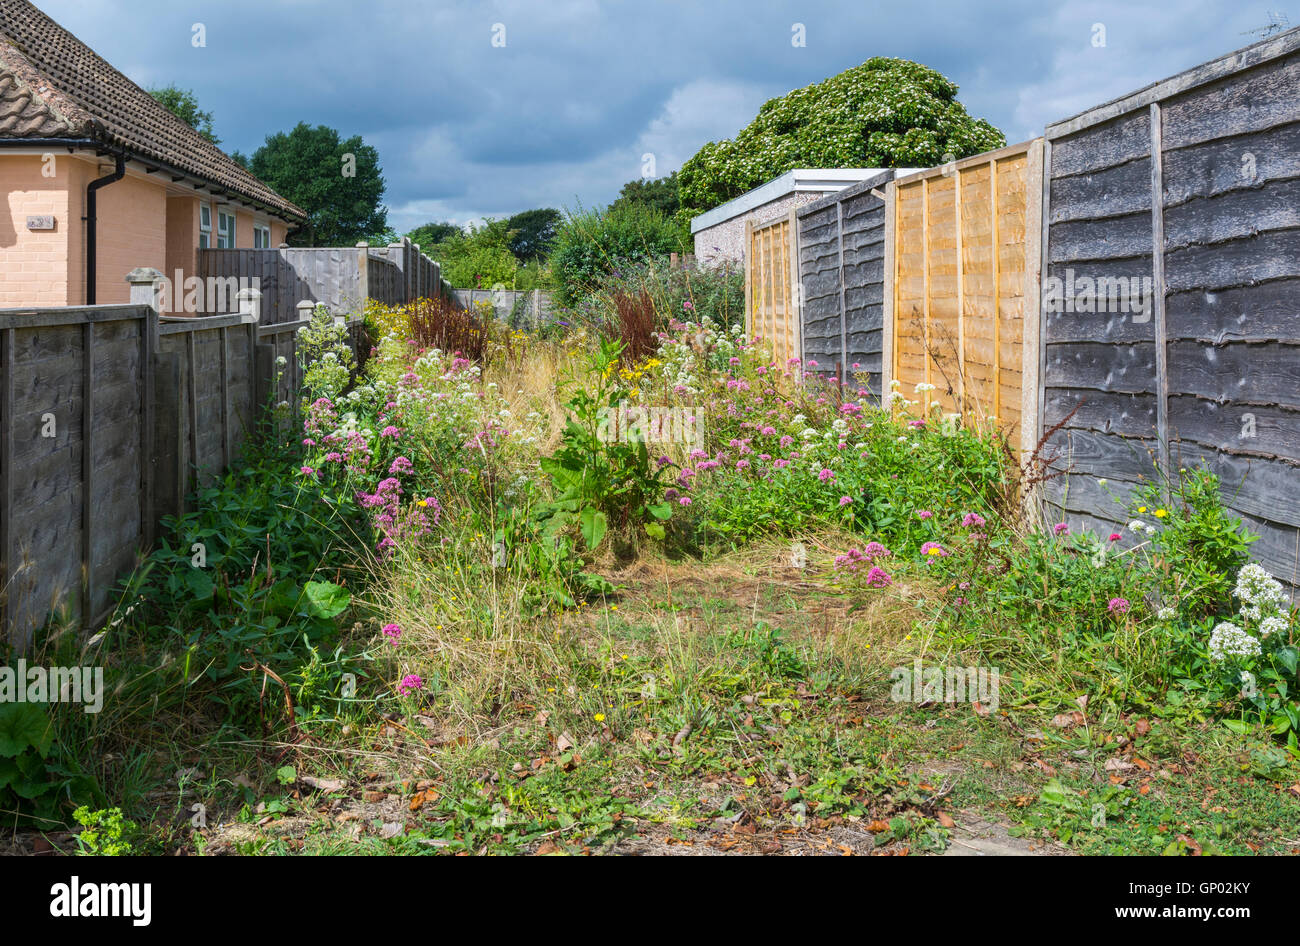 Overgrowth of plants and weeds in an alleyway. - Stock Image